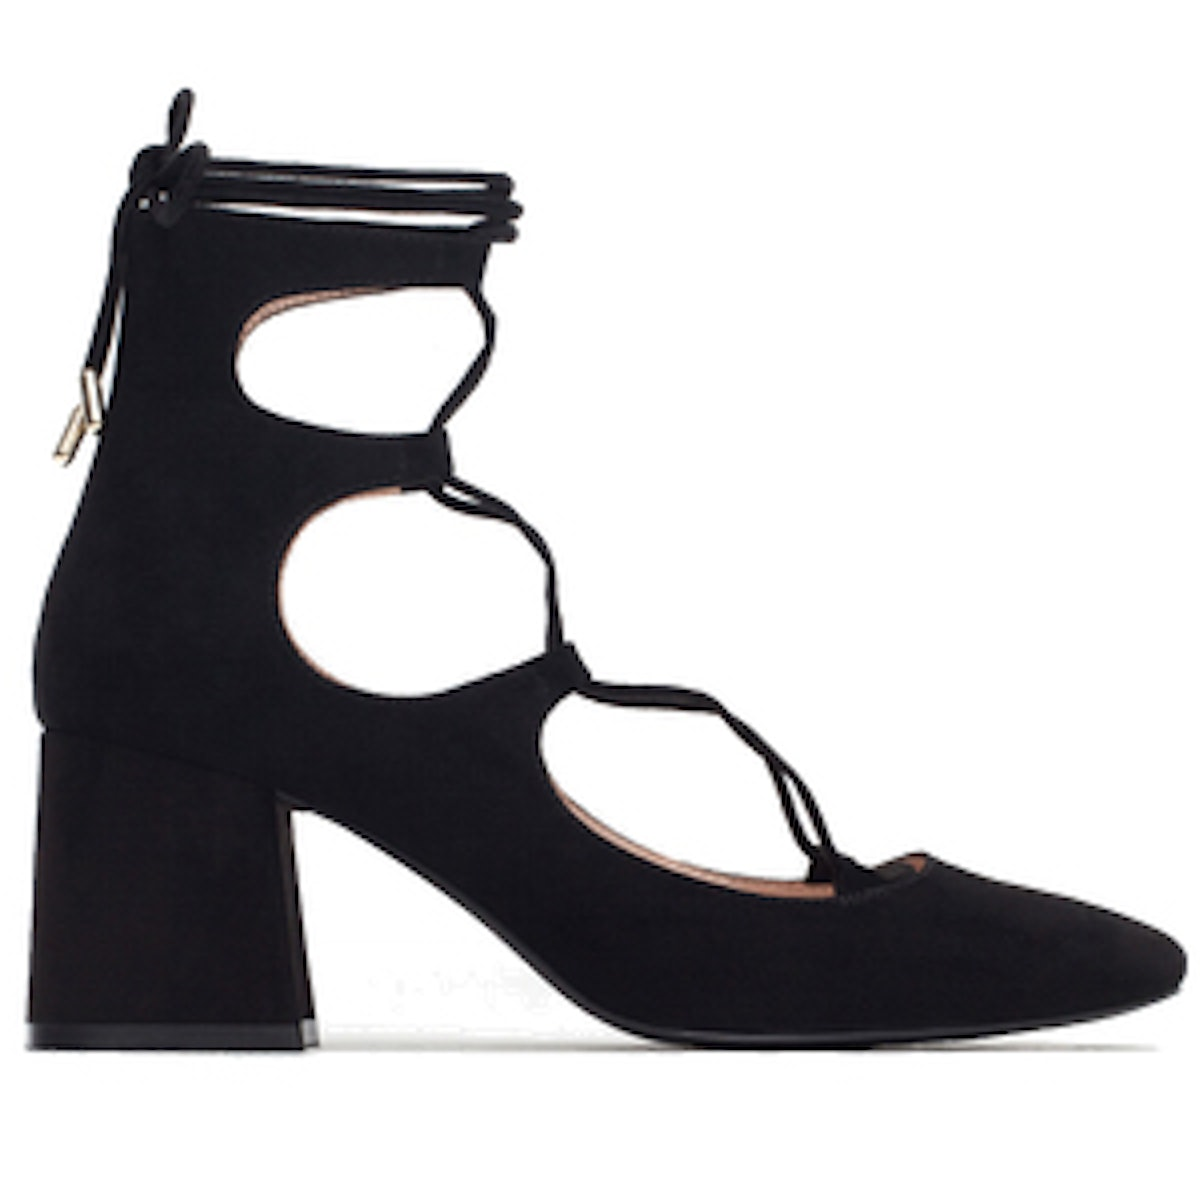 Lace-Up Heeled Shoes